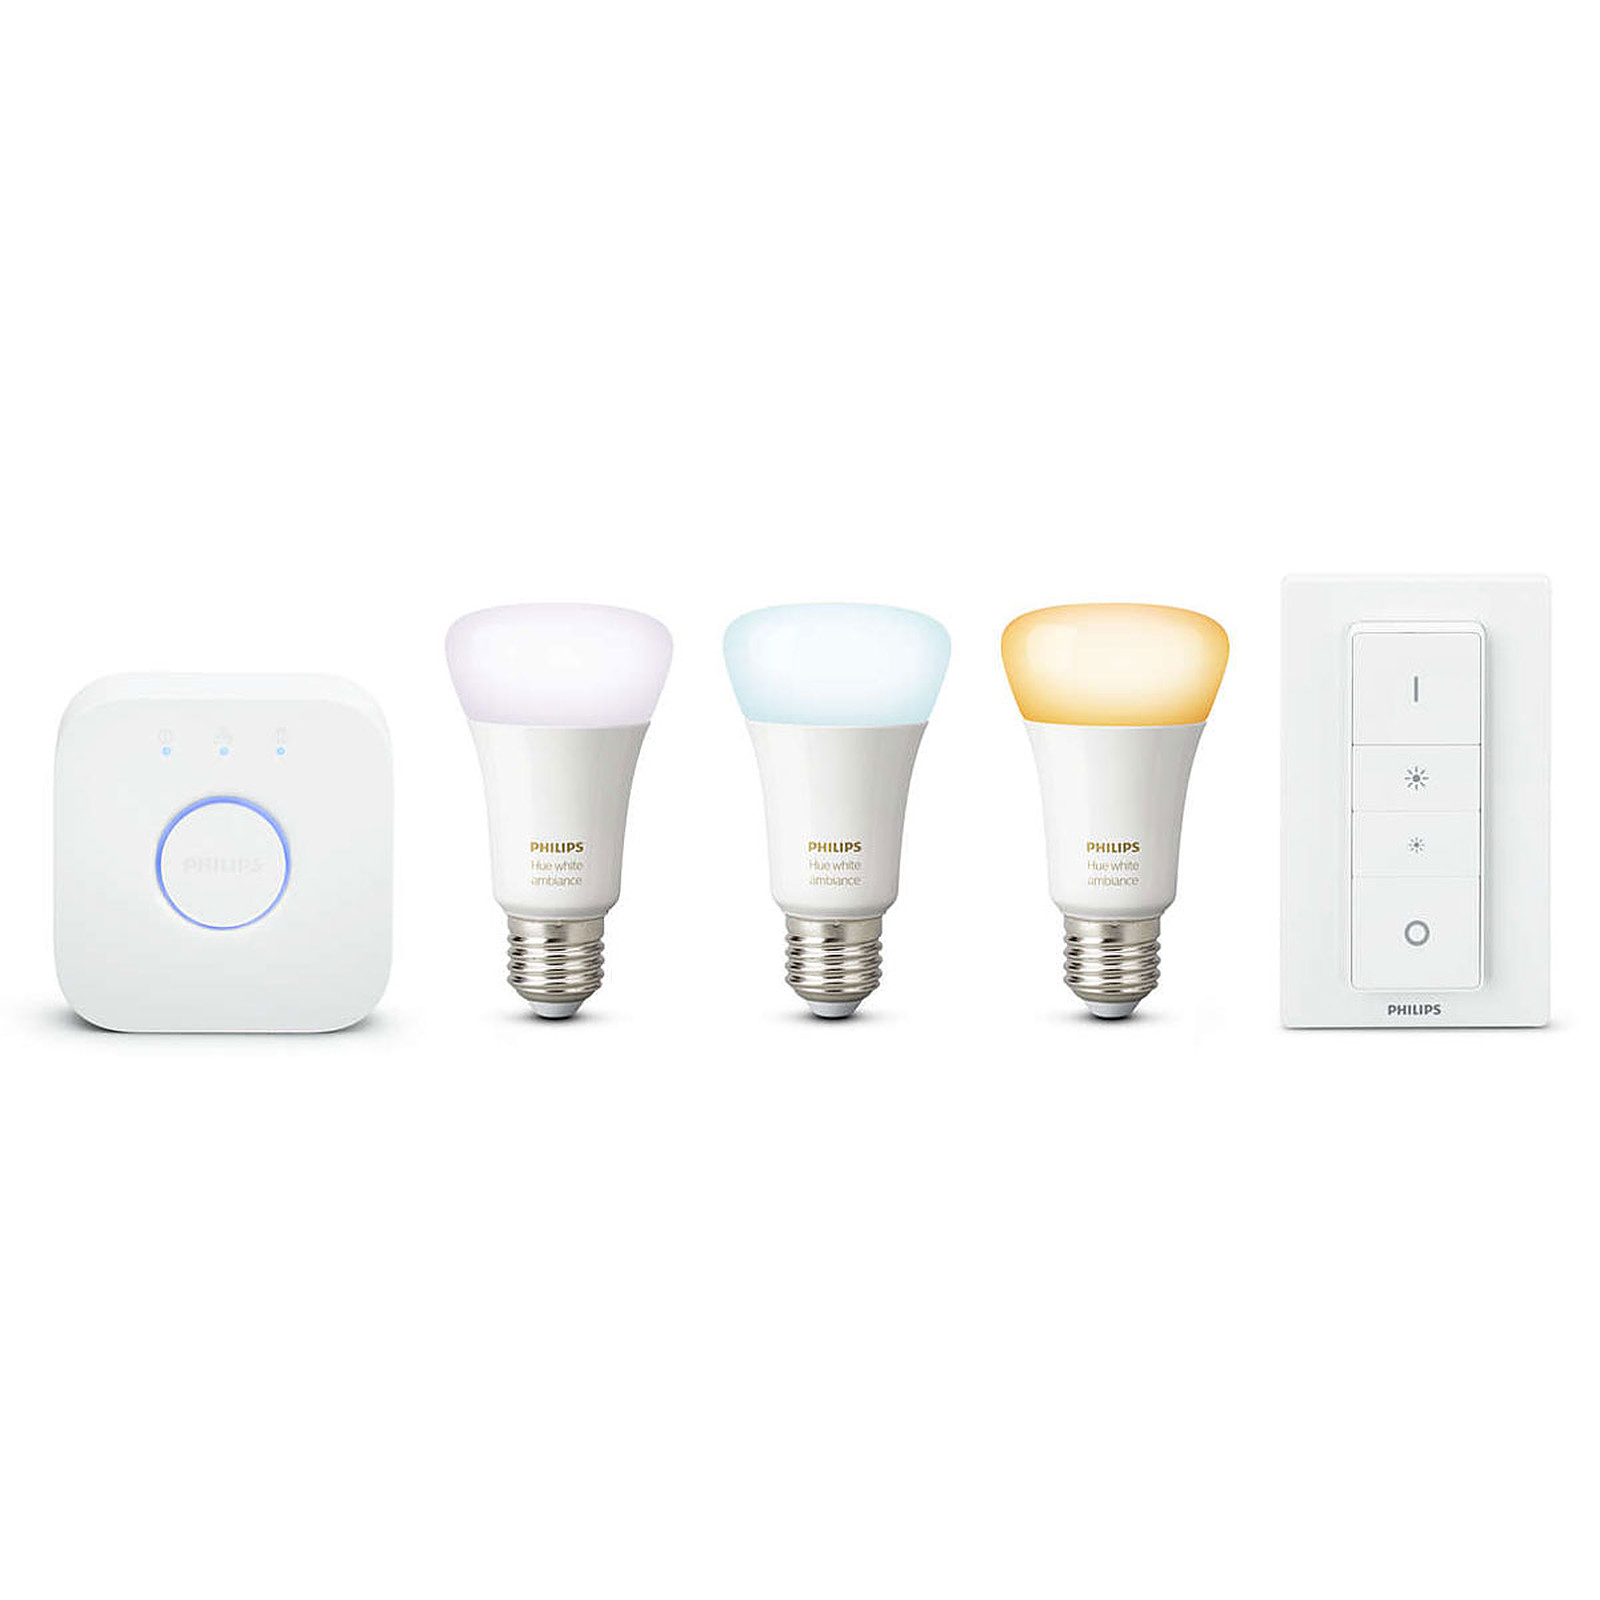 philips hue white ambiance kit de d marrage e27 ampoule connect e philips sur. Black Bedroom Furniture Sets. Home Design Ideas